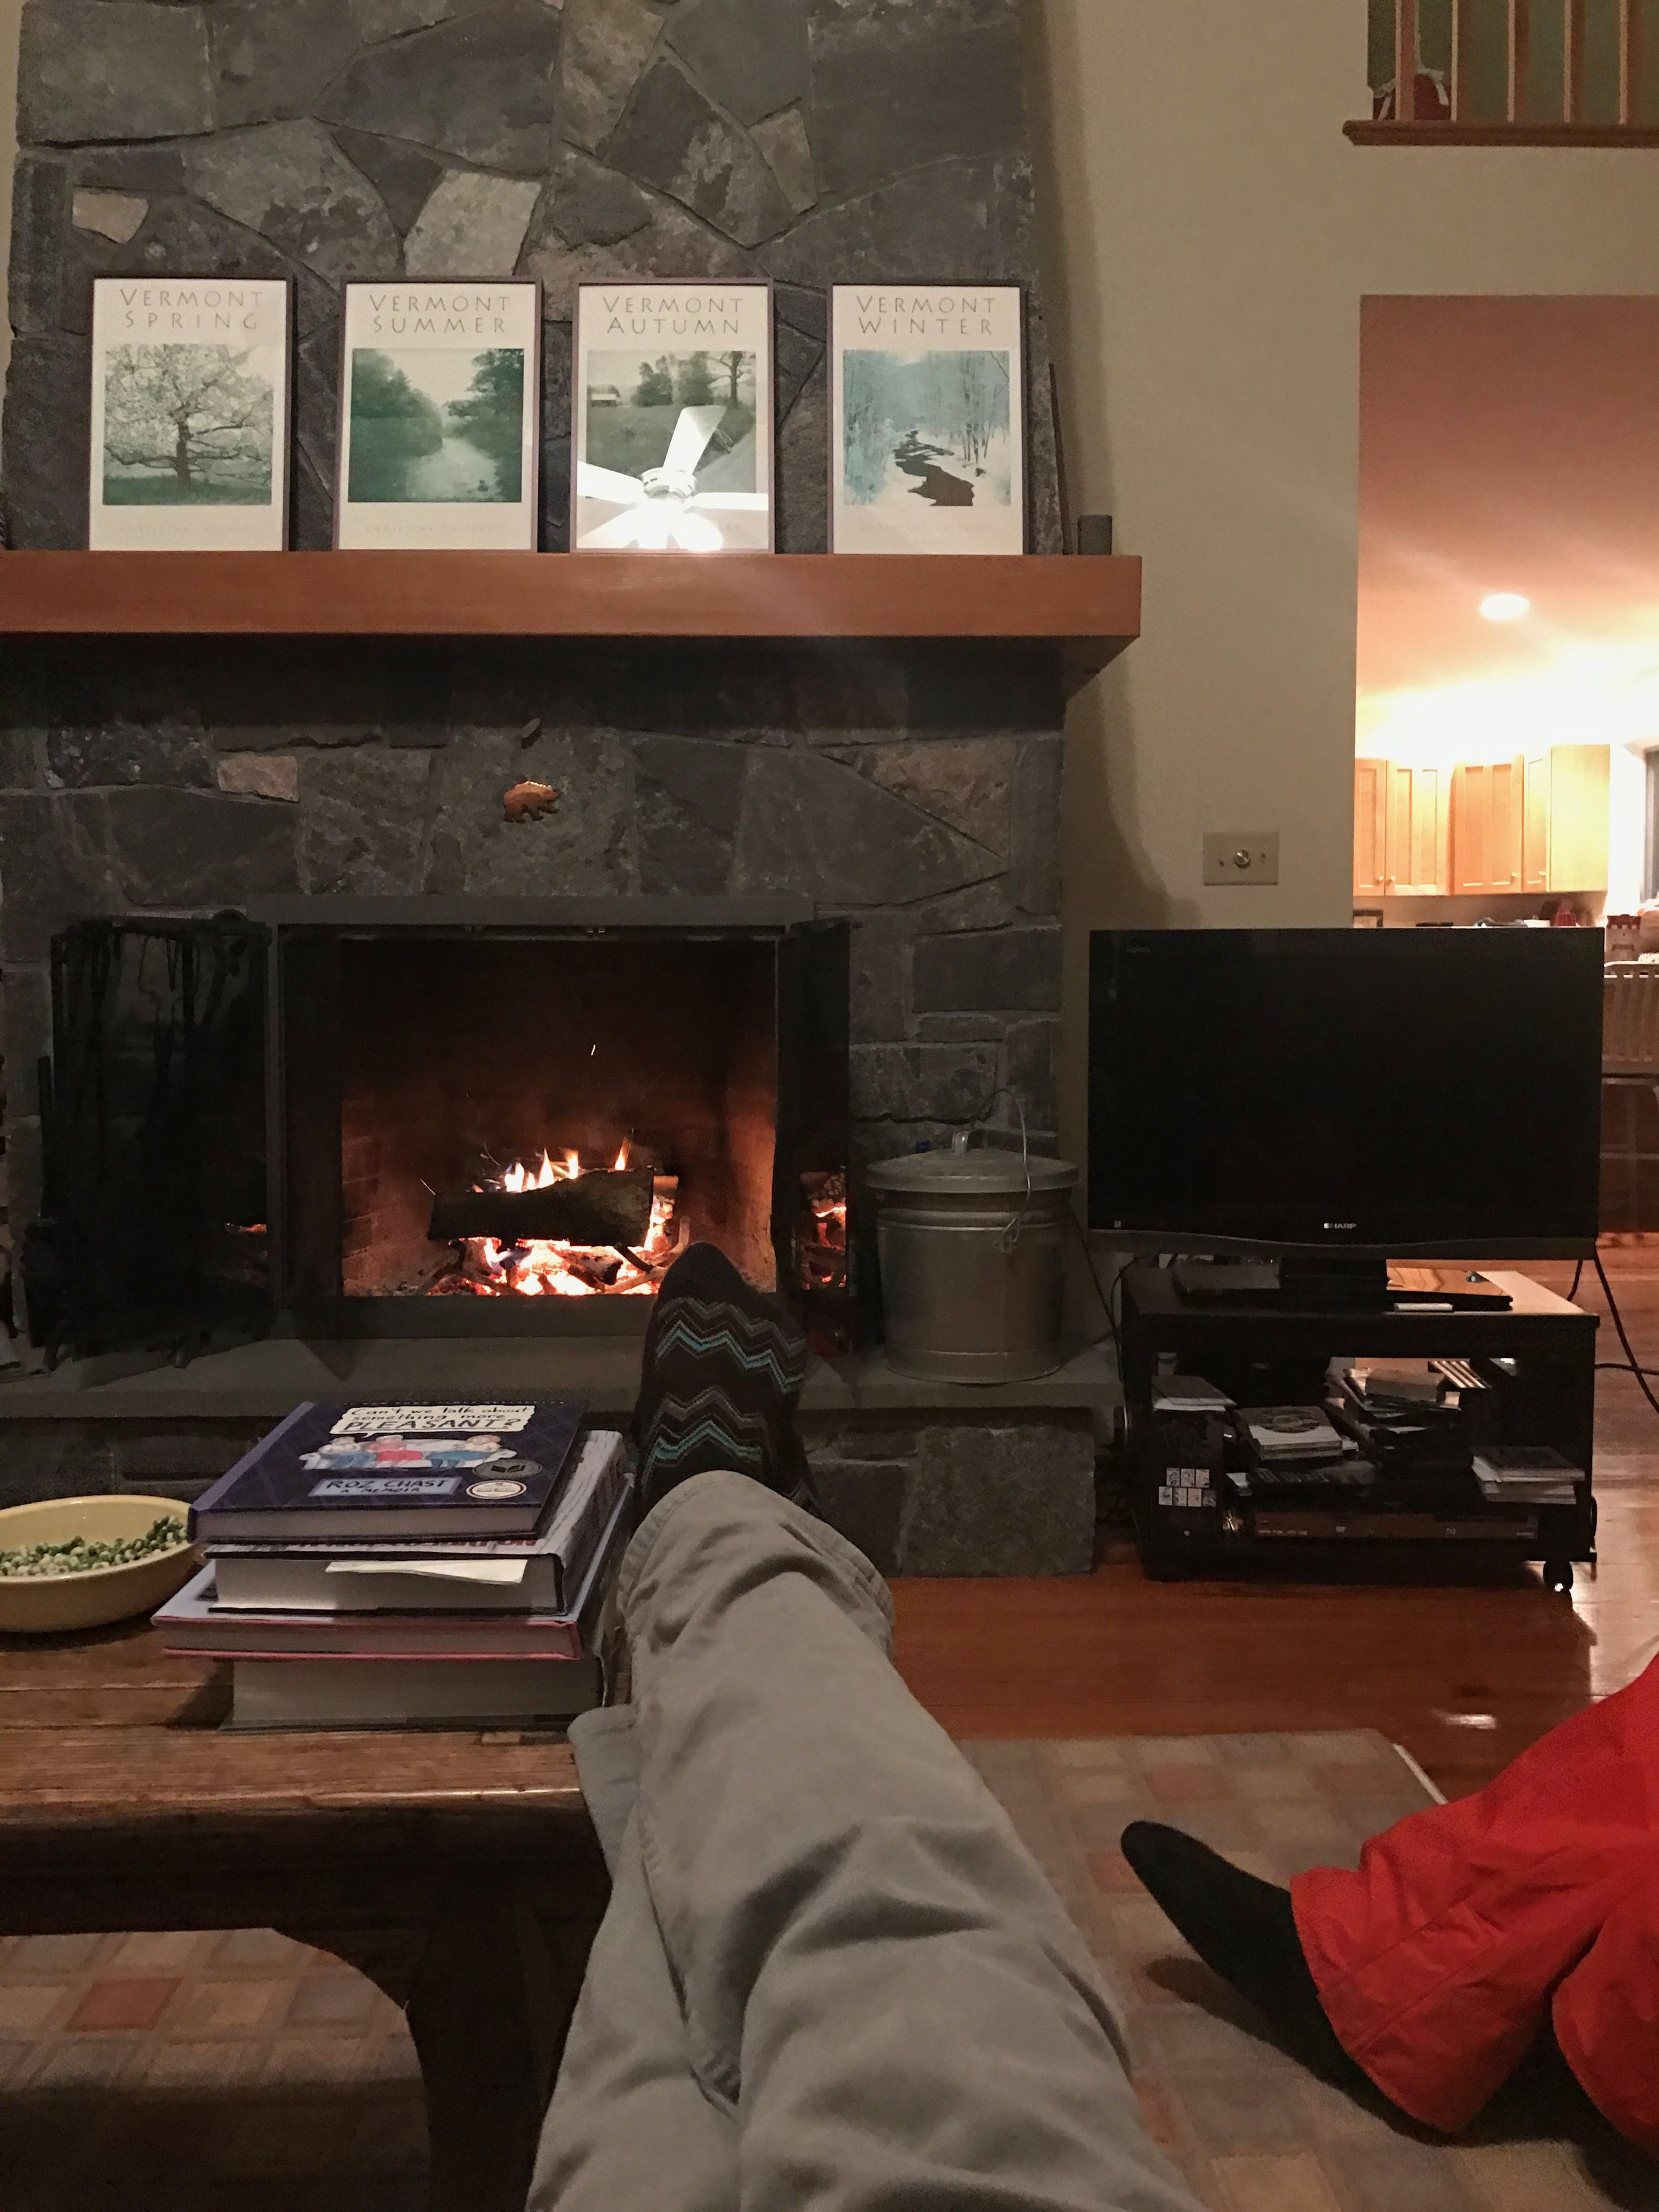 Lounging by the fire, the best winter activity.